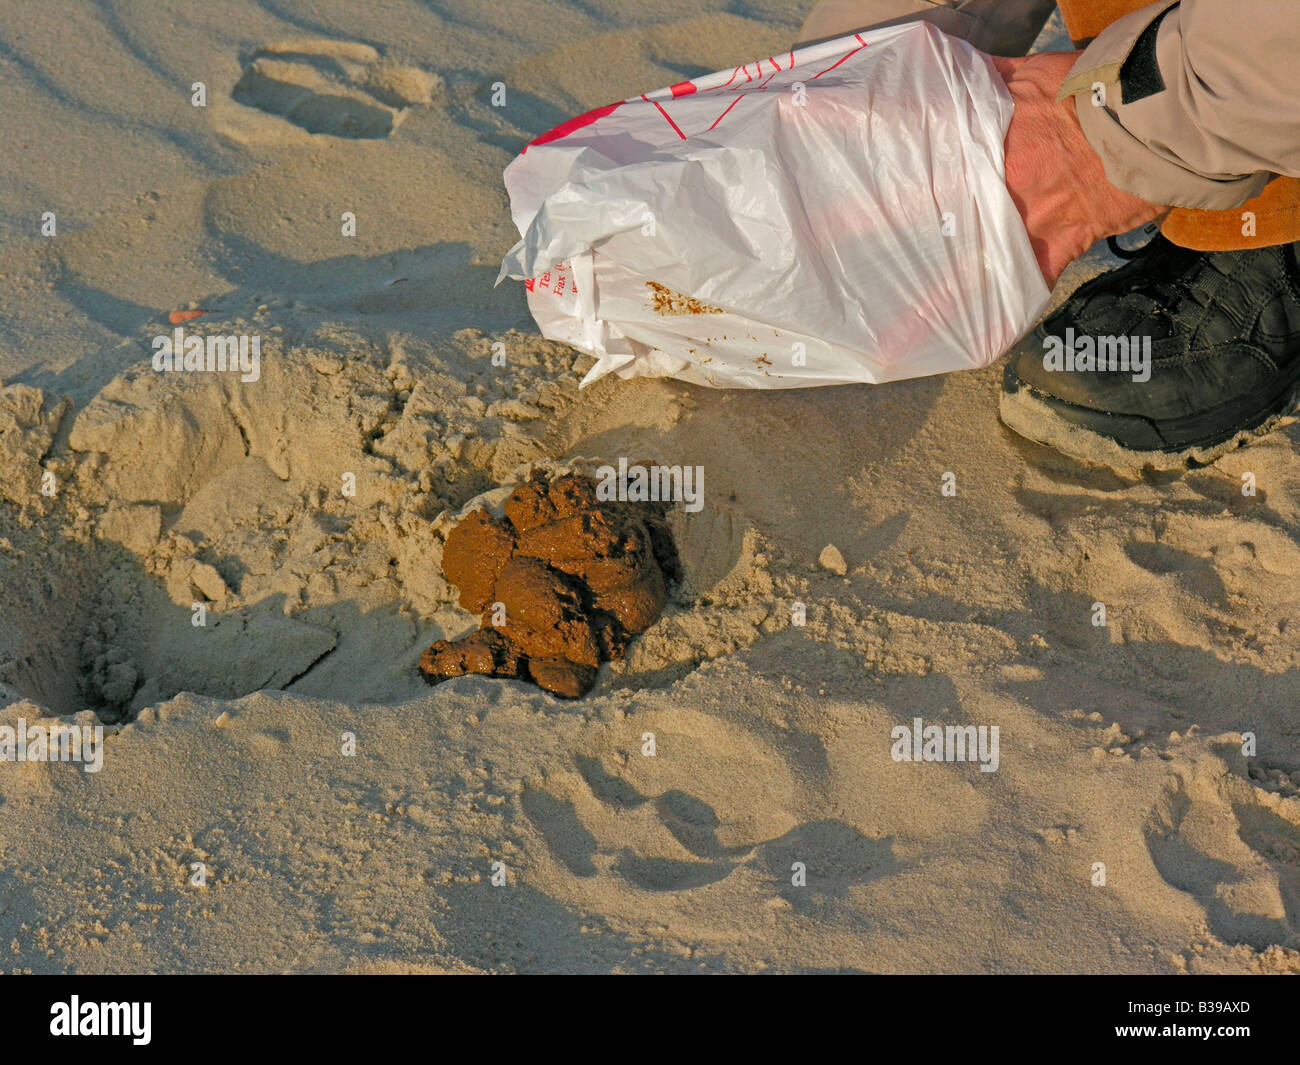 woman eliminating dog dirt doggie do with a plastic bag on beach - Stock Image